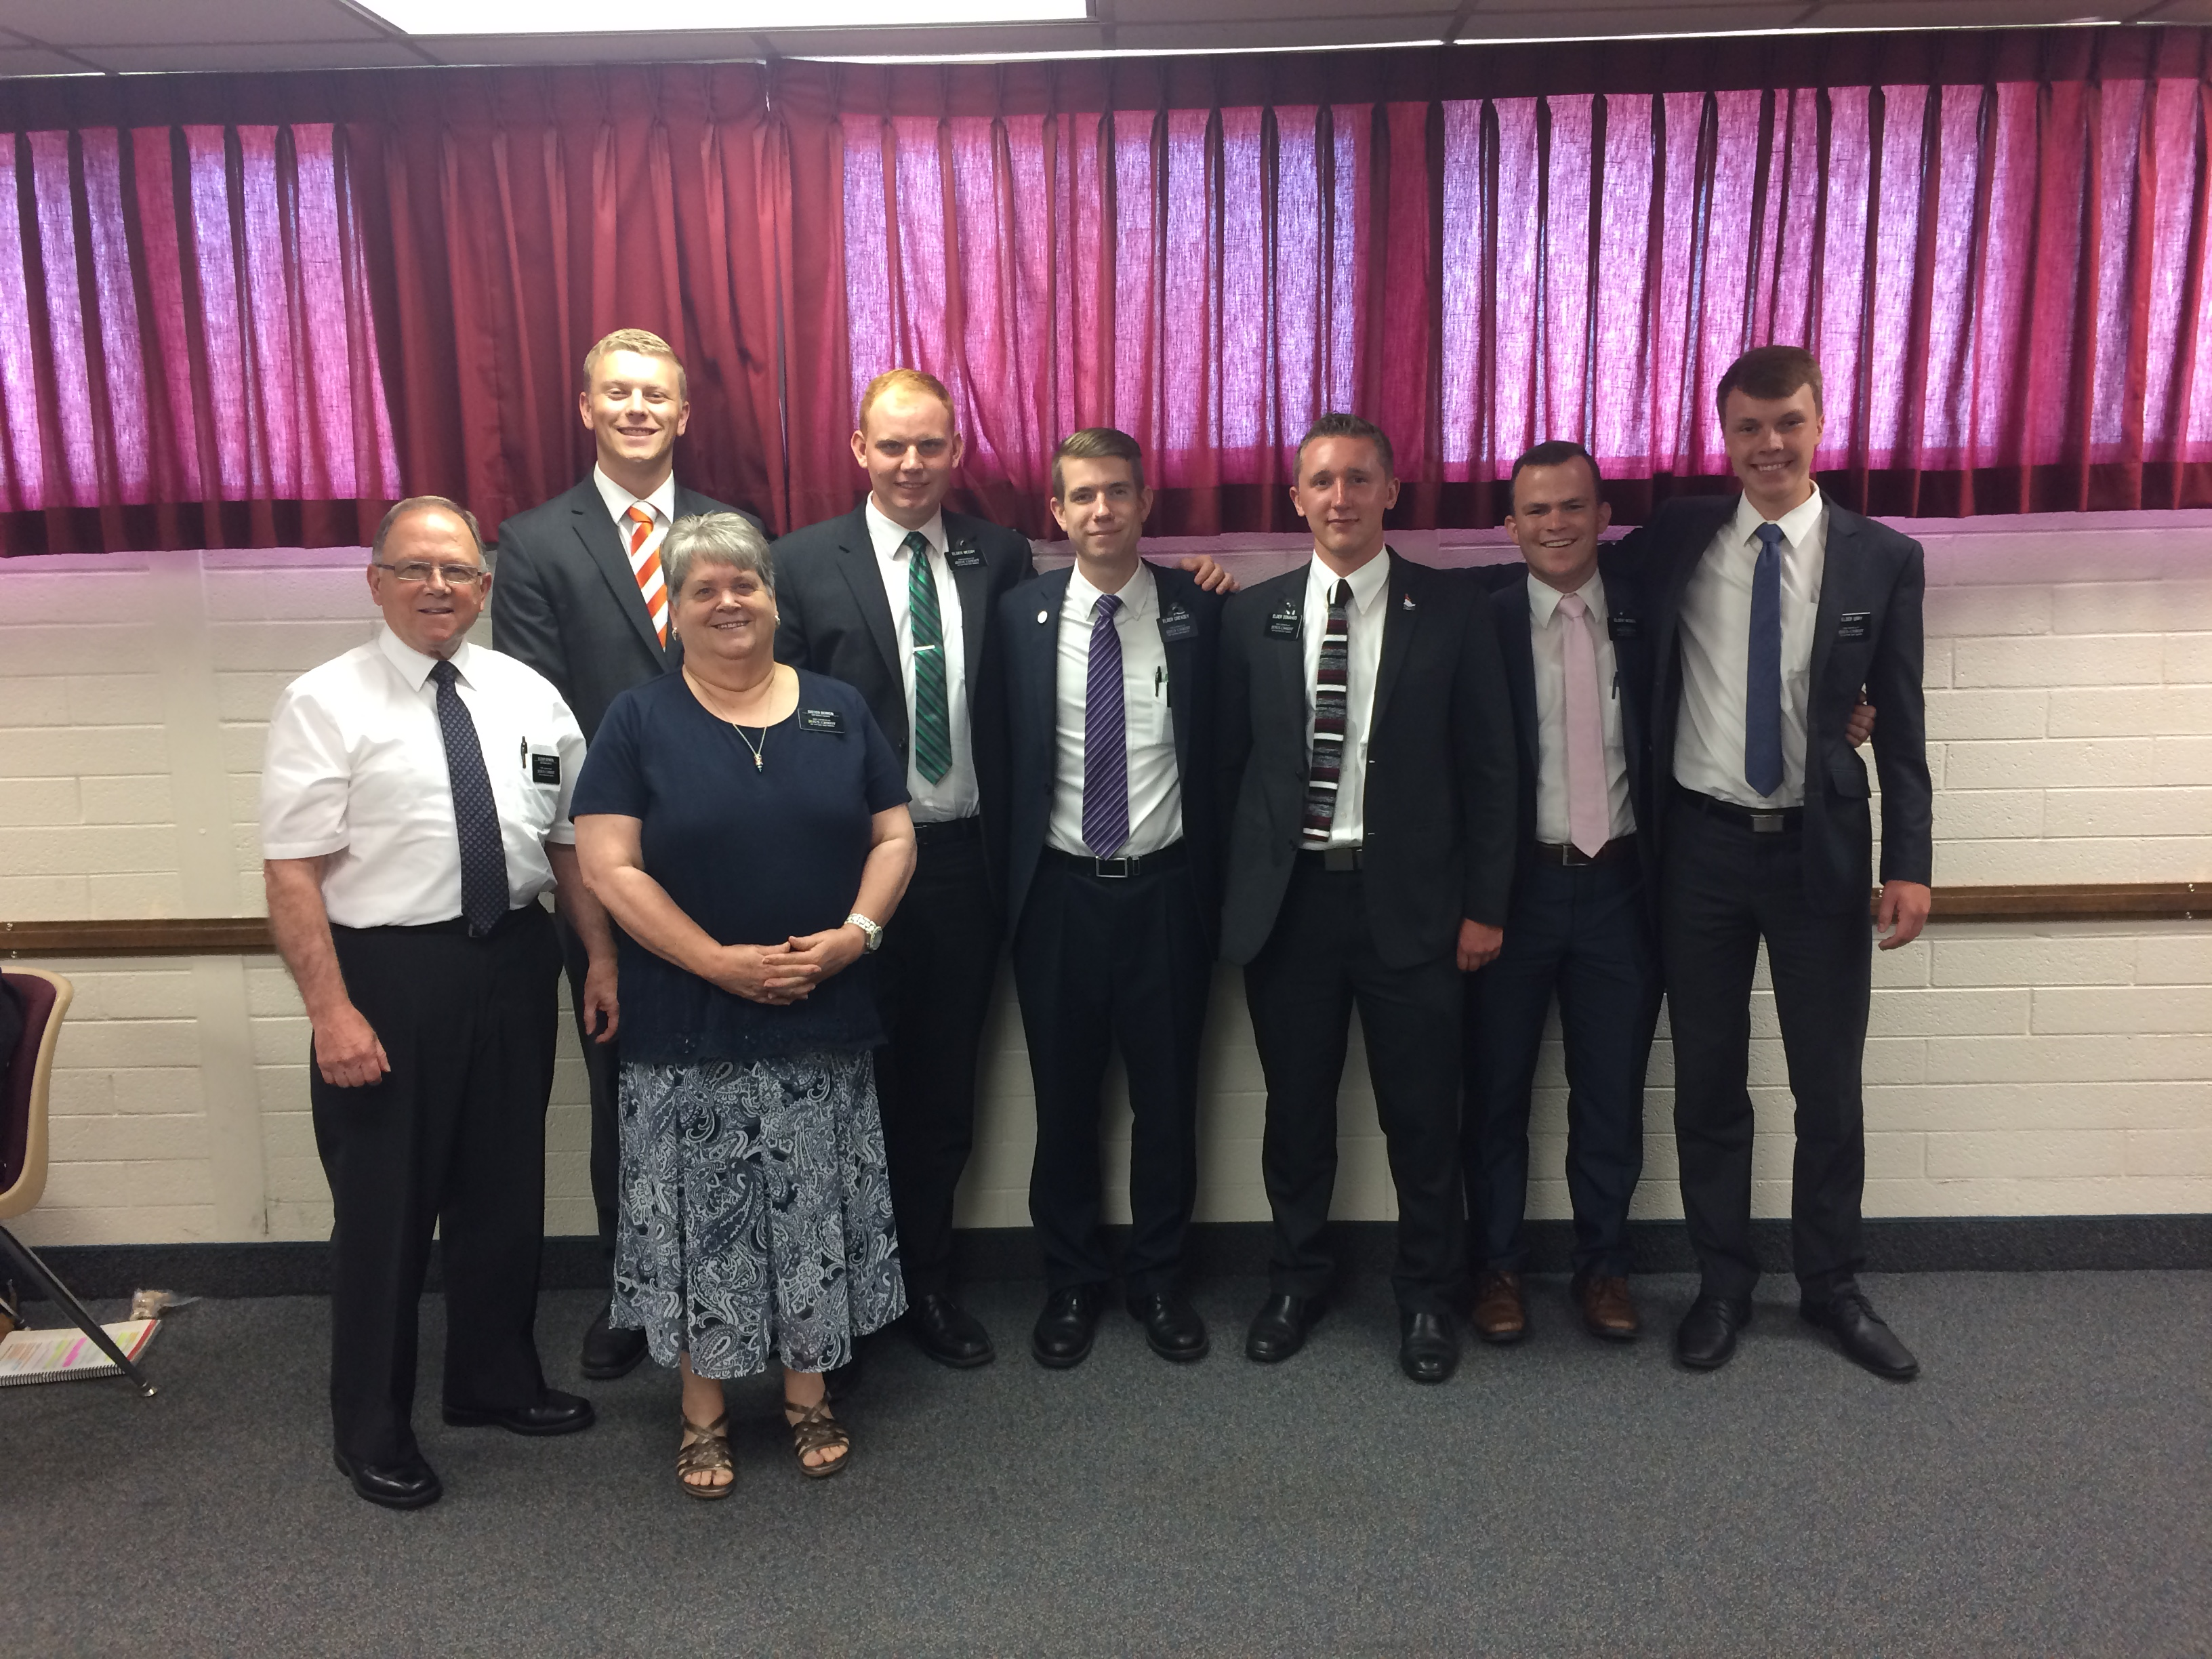 Elder Bruce Bowen and Sister Valerie Bowen, who are serving as self-reliance missionaries in the Tennessee Knoxville Mission, stand with a district of young elder missionaries after a district meeting.